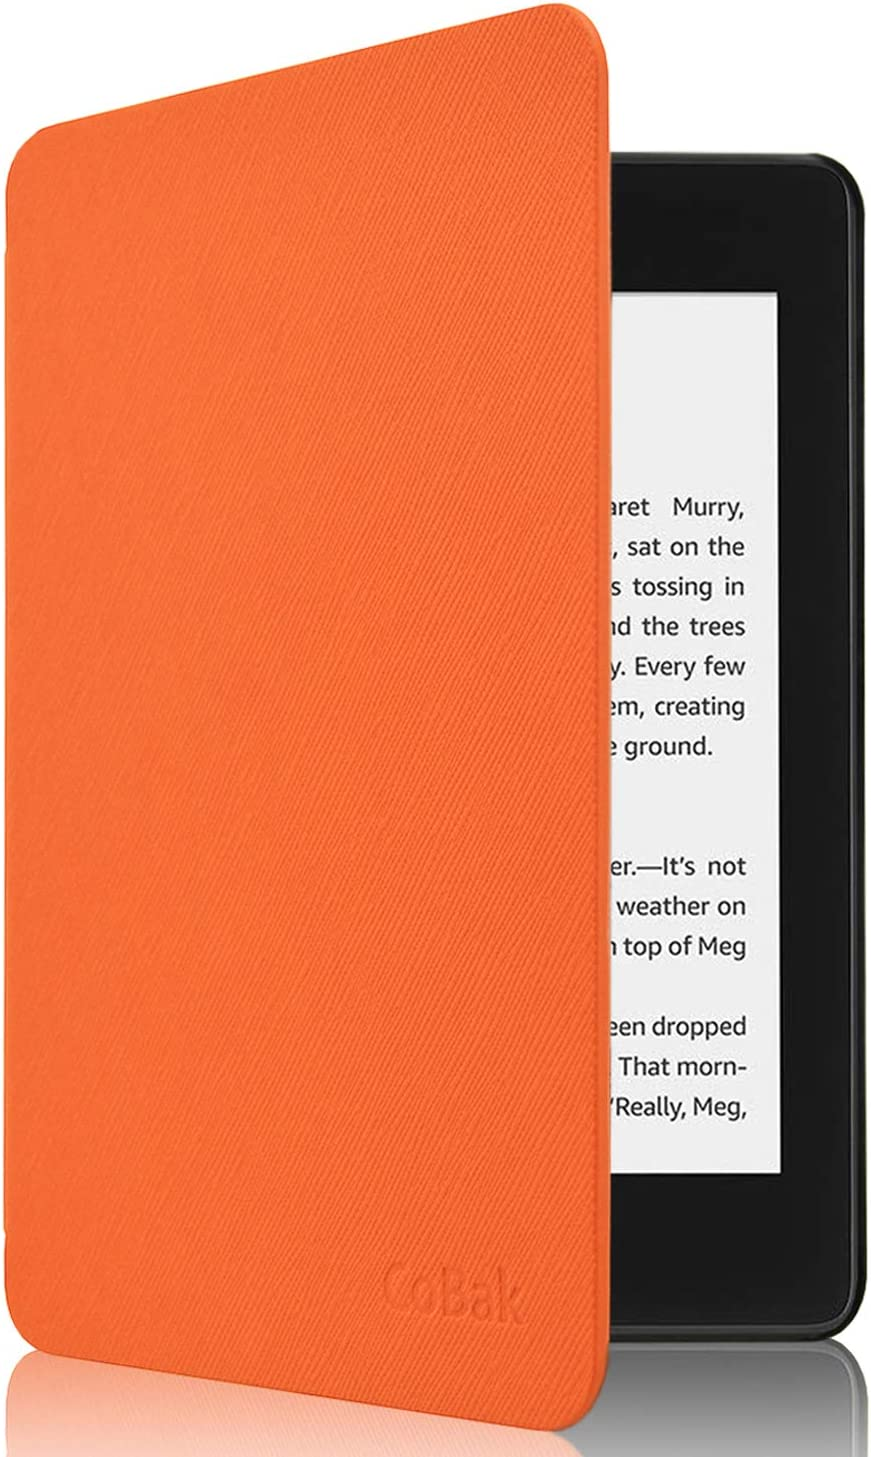 All New PU Leather Smart Cover with Auto Sleep Wake Feature for Kindle Paperwhite 10th Generation 2018 Released Orange CoBak Kindle Paperwhite Case